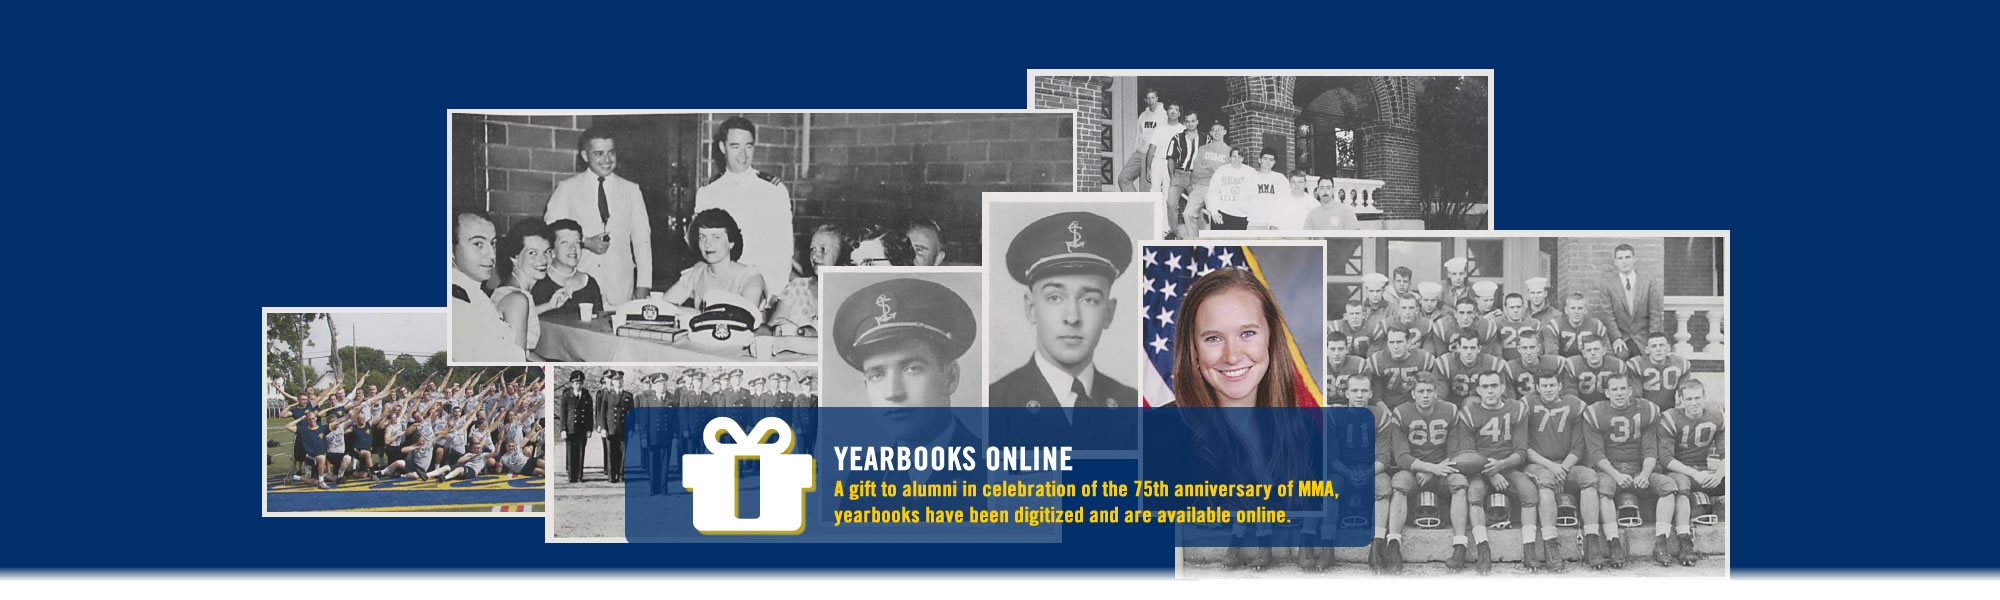 Yearbooks Digitized